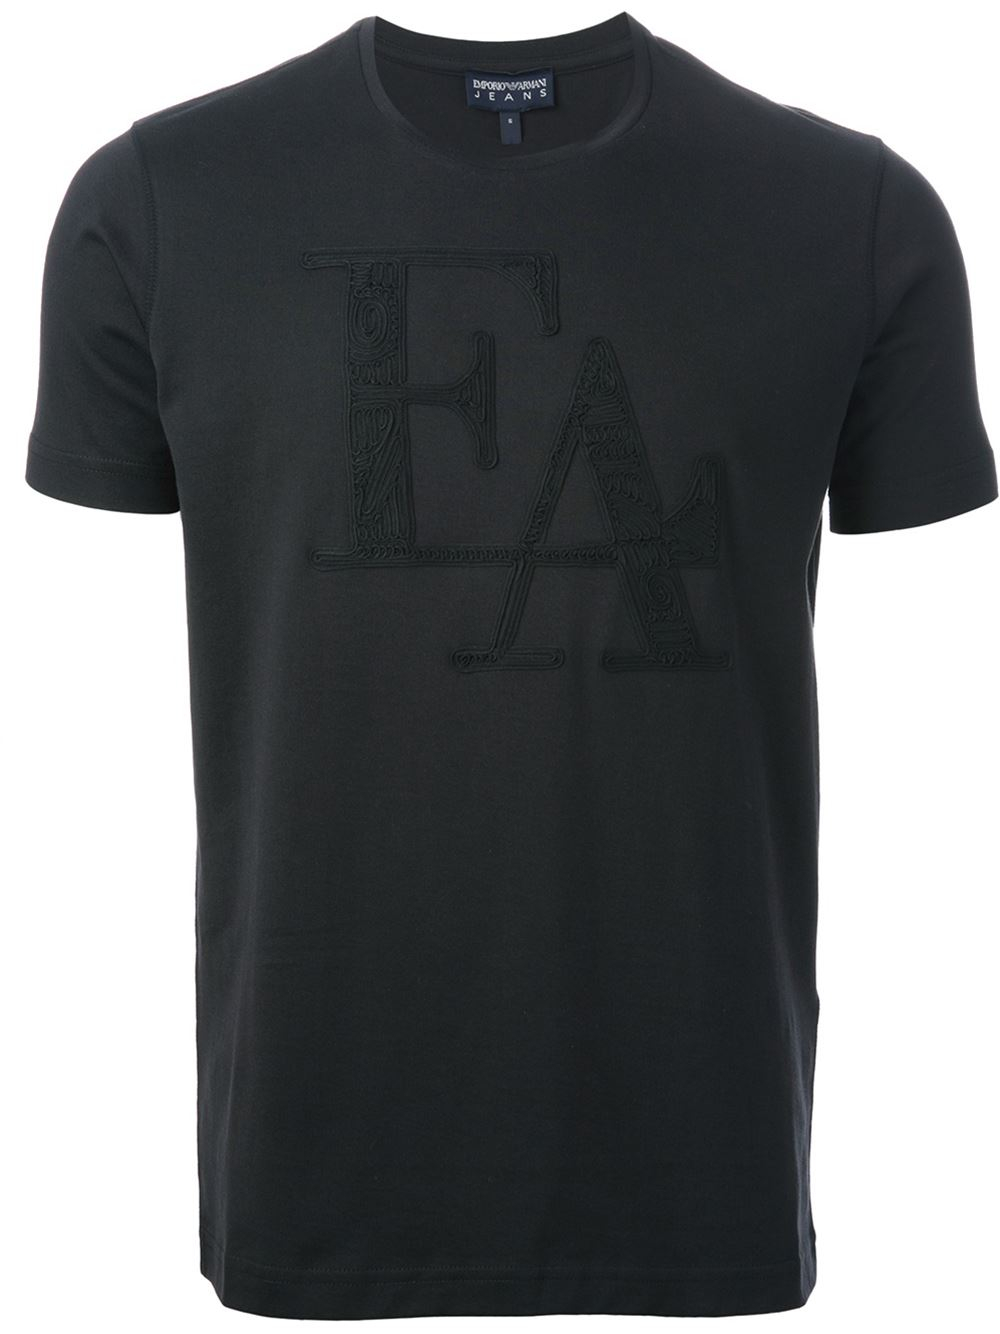 Emporio armani embroidered logo t shirt in black for men for T shirt with embroidered logo